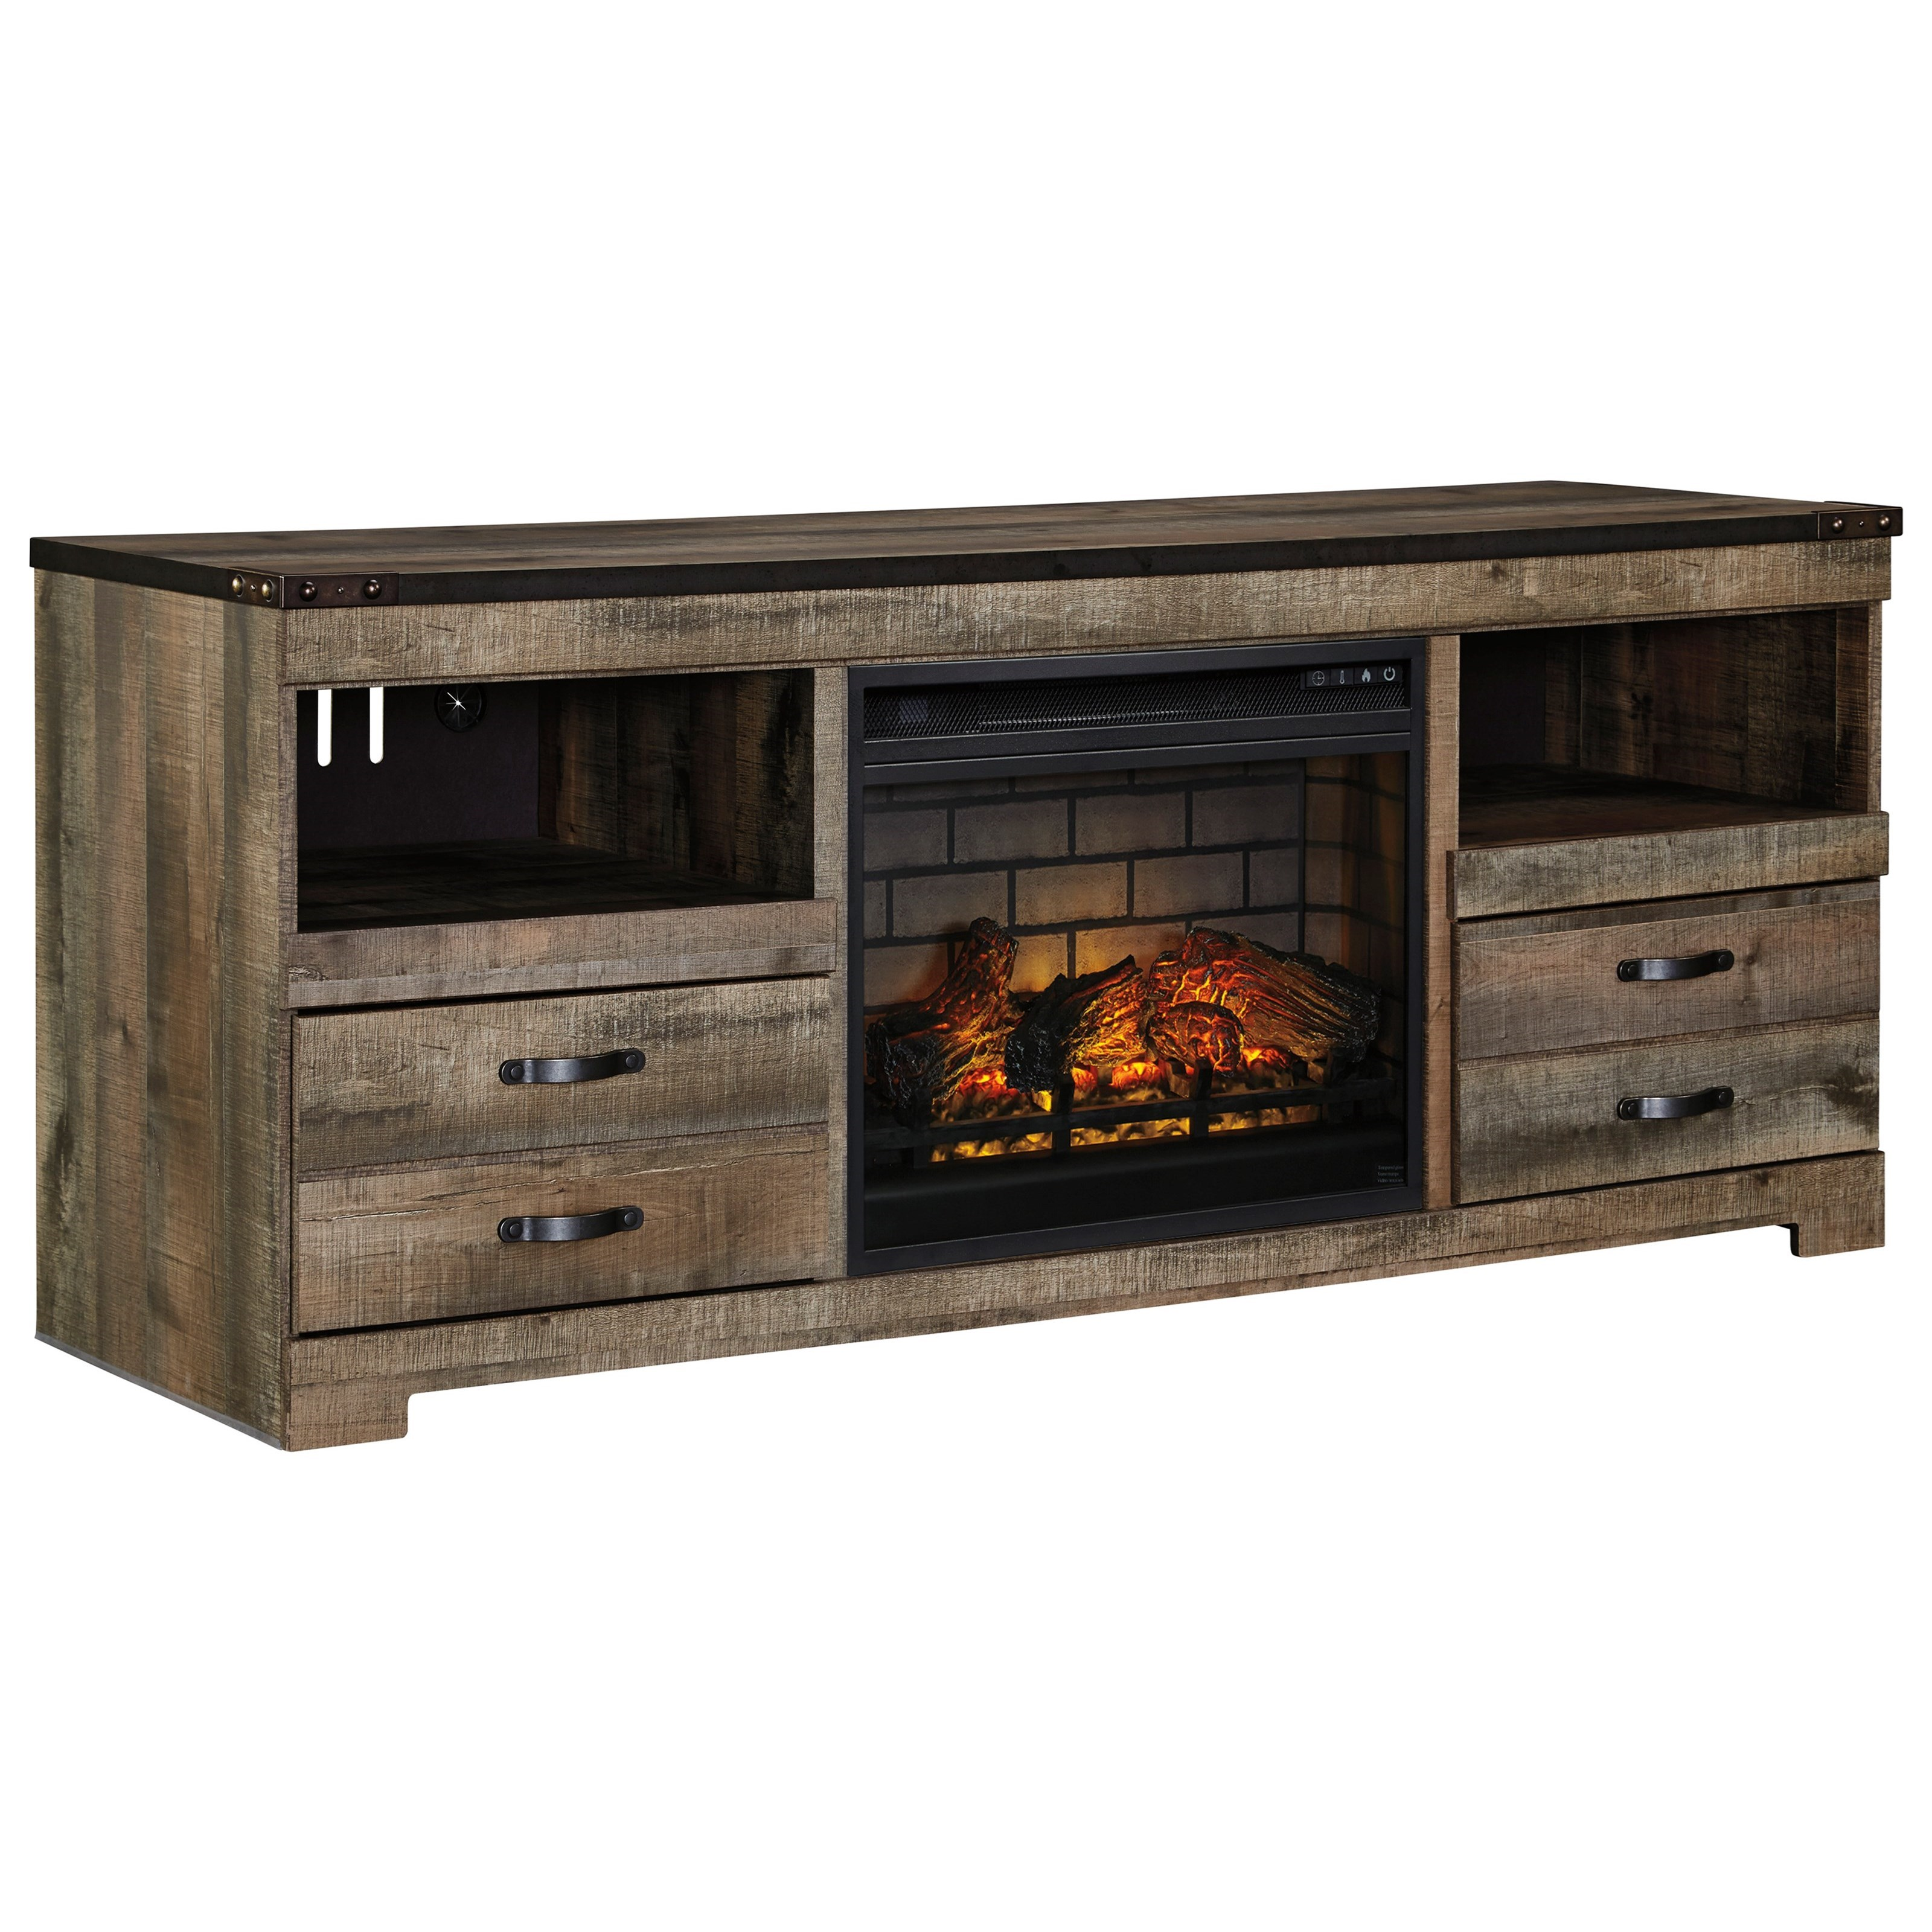 Trinell Large TV Stand with Fireplace Insert by Signature Design by Ashley at Darvin Furniture